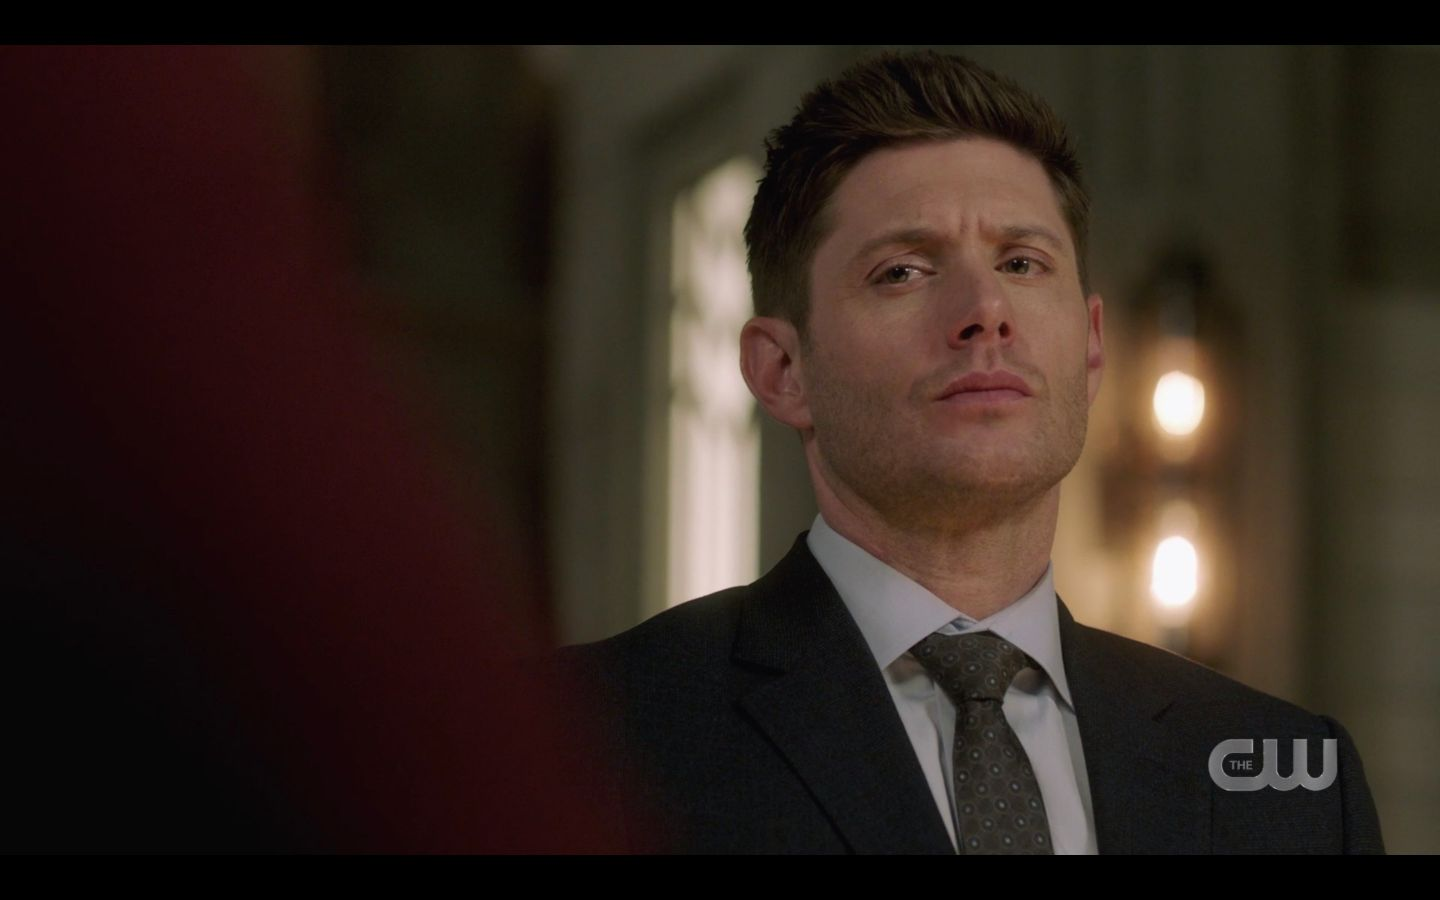 Dean Winchester to Cas ready to kill jacks this is the only way SPN 14.20